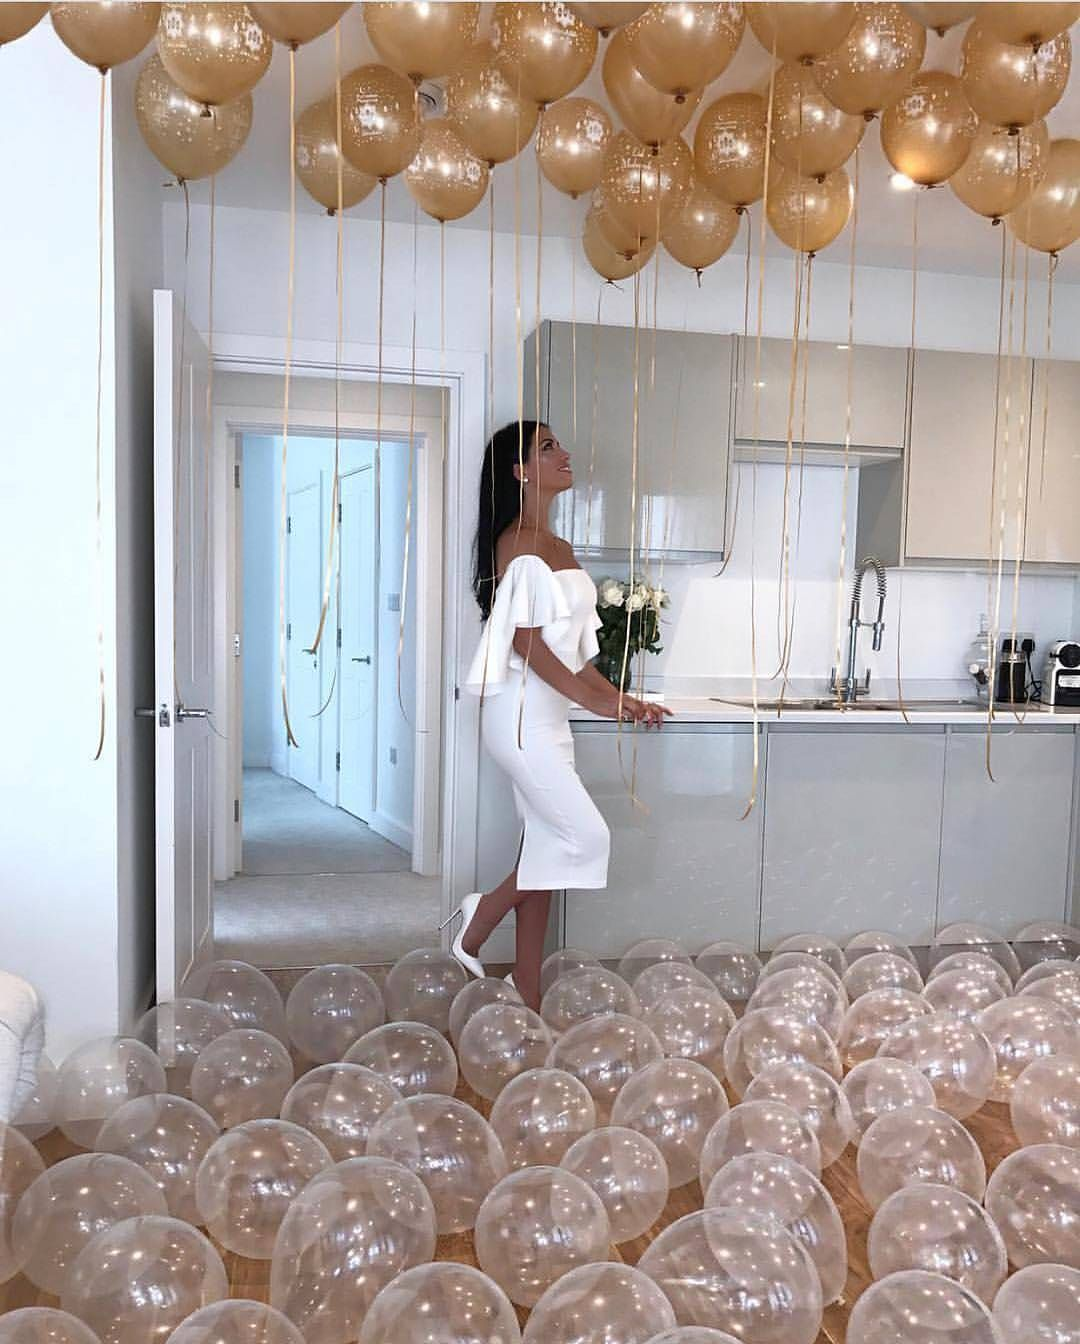 Pin By She Overcomes On Birthday Behavior In 2019